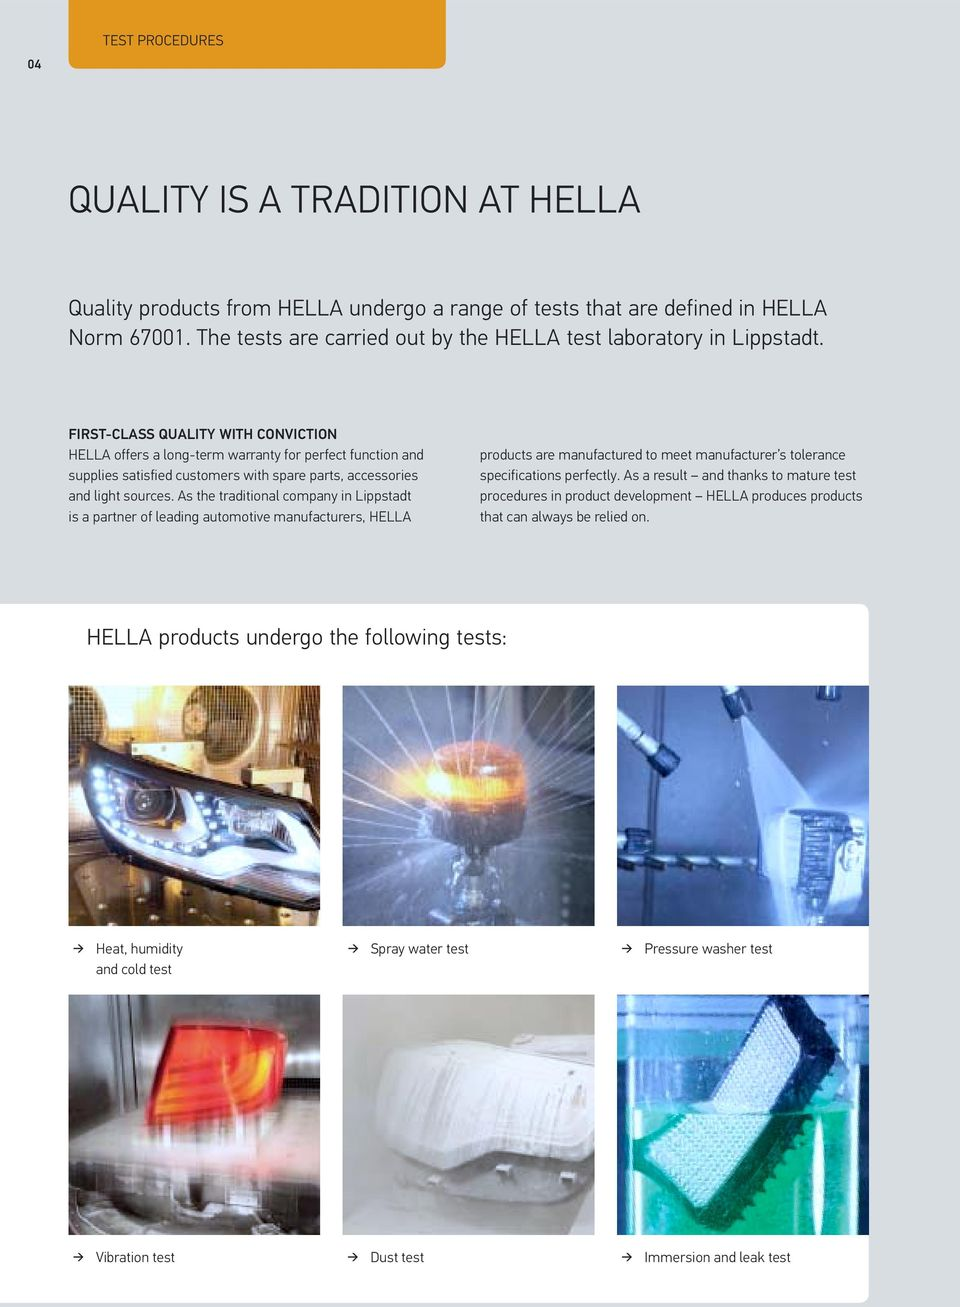 FIRST-CLASS QUALITY WITH CONVICTION HELLA offers a long-term warranty for perfect function and supplies satisfied customers with spare parts, accessories and light sources.